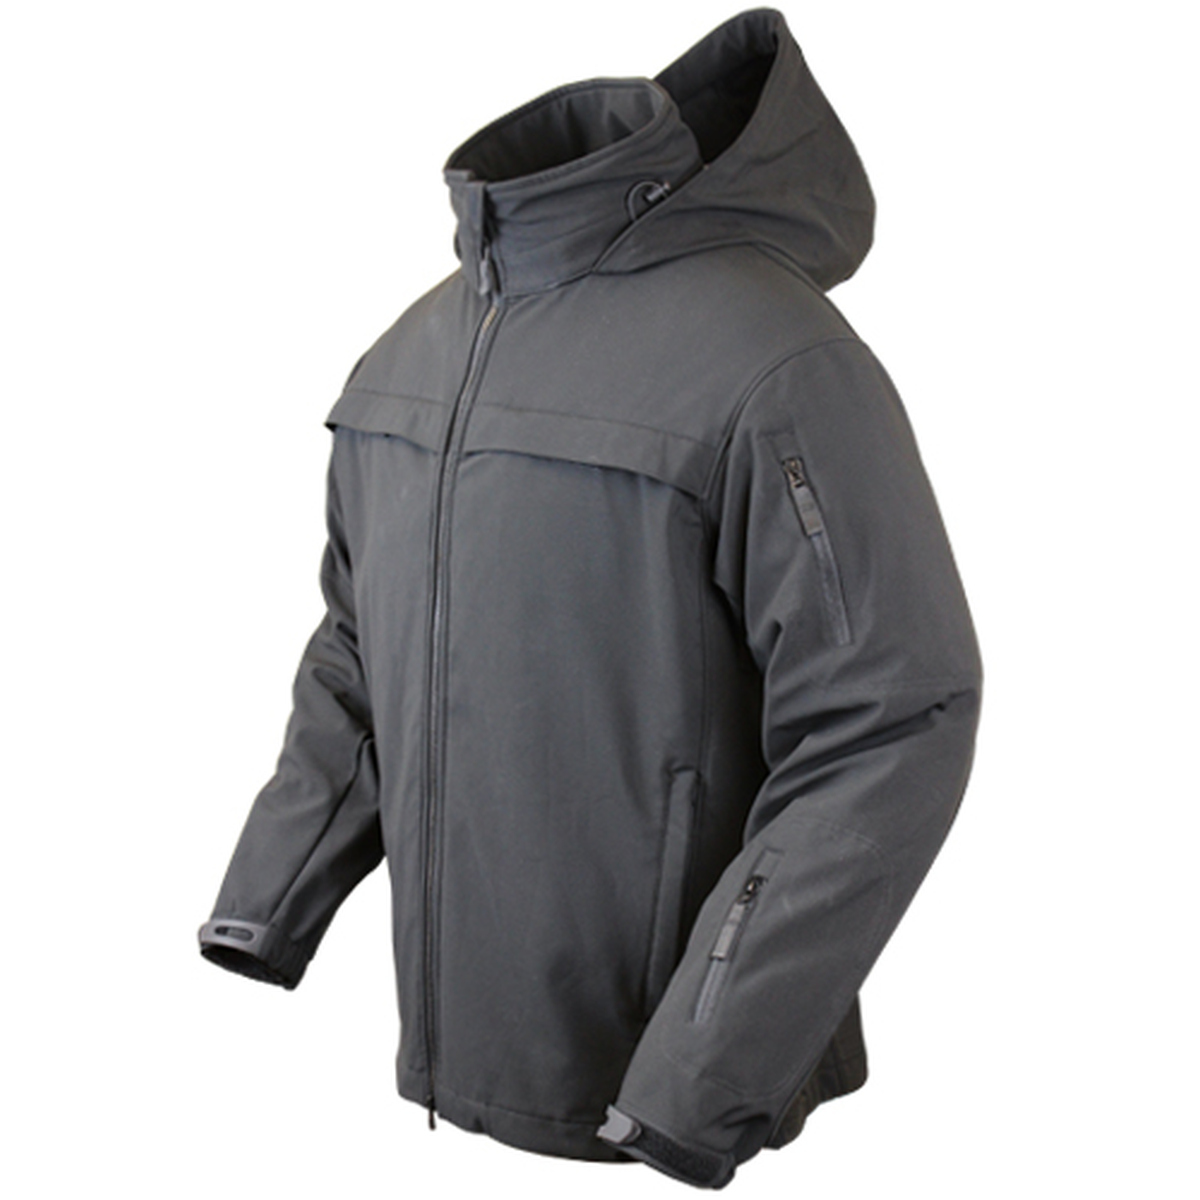 Haze Softshell Jacket